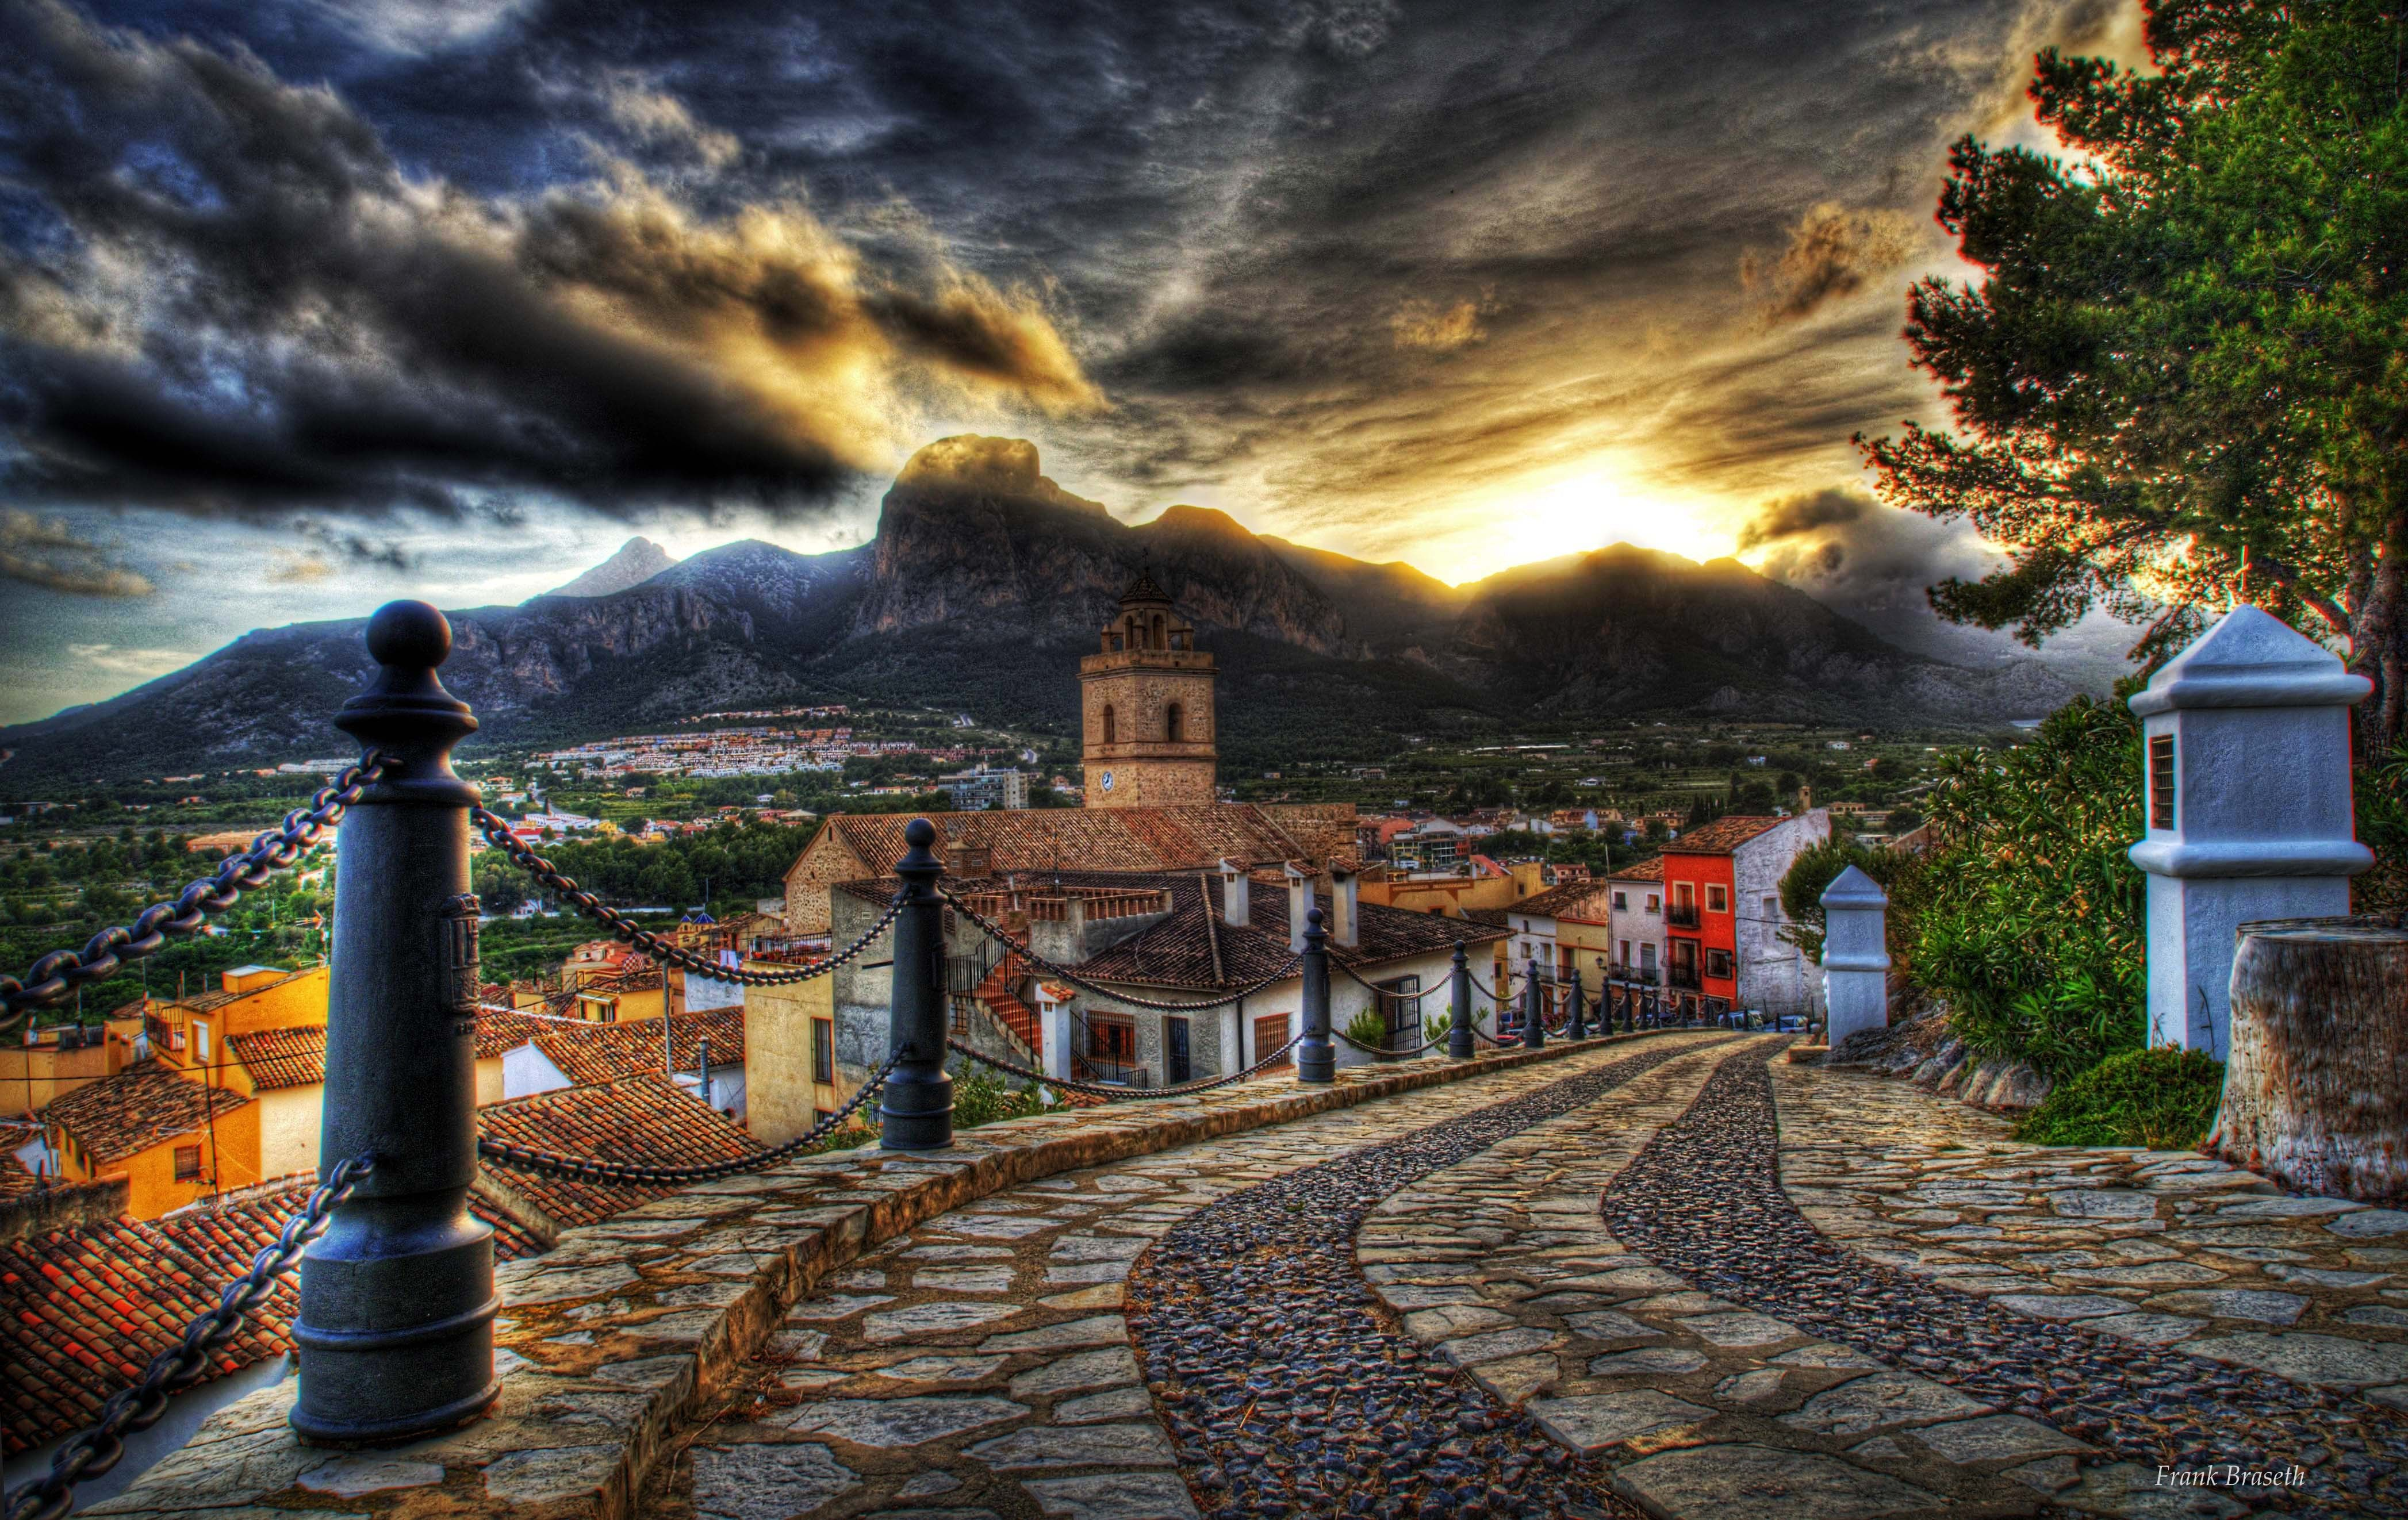 Cloudy weather hdr environment pinterest hdr hdr pictures and cloudy weather hdr altavistaventures Gallery